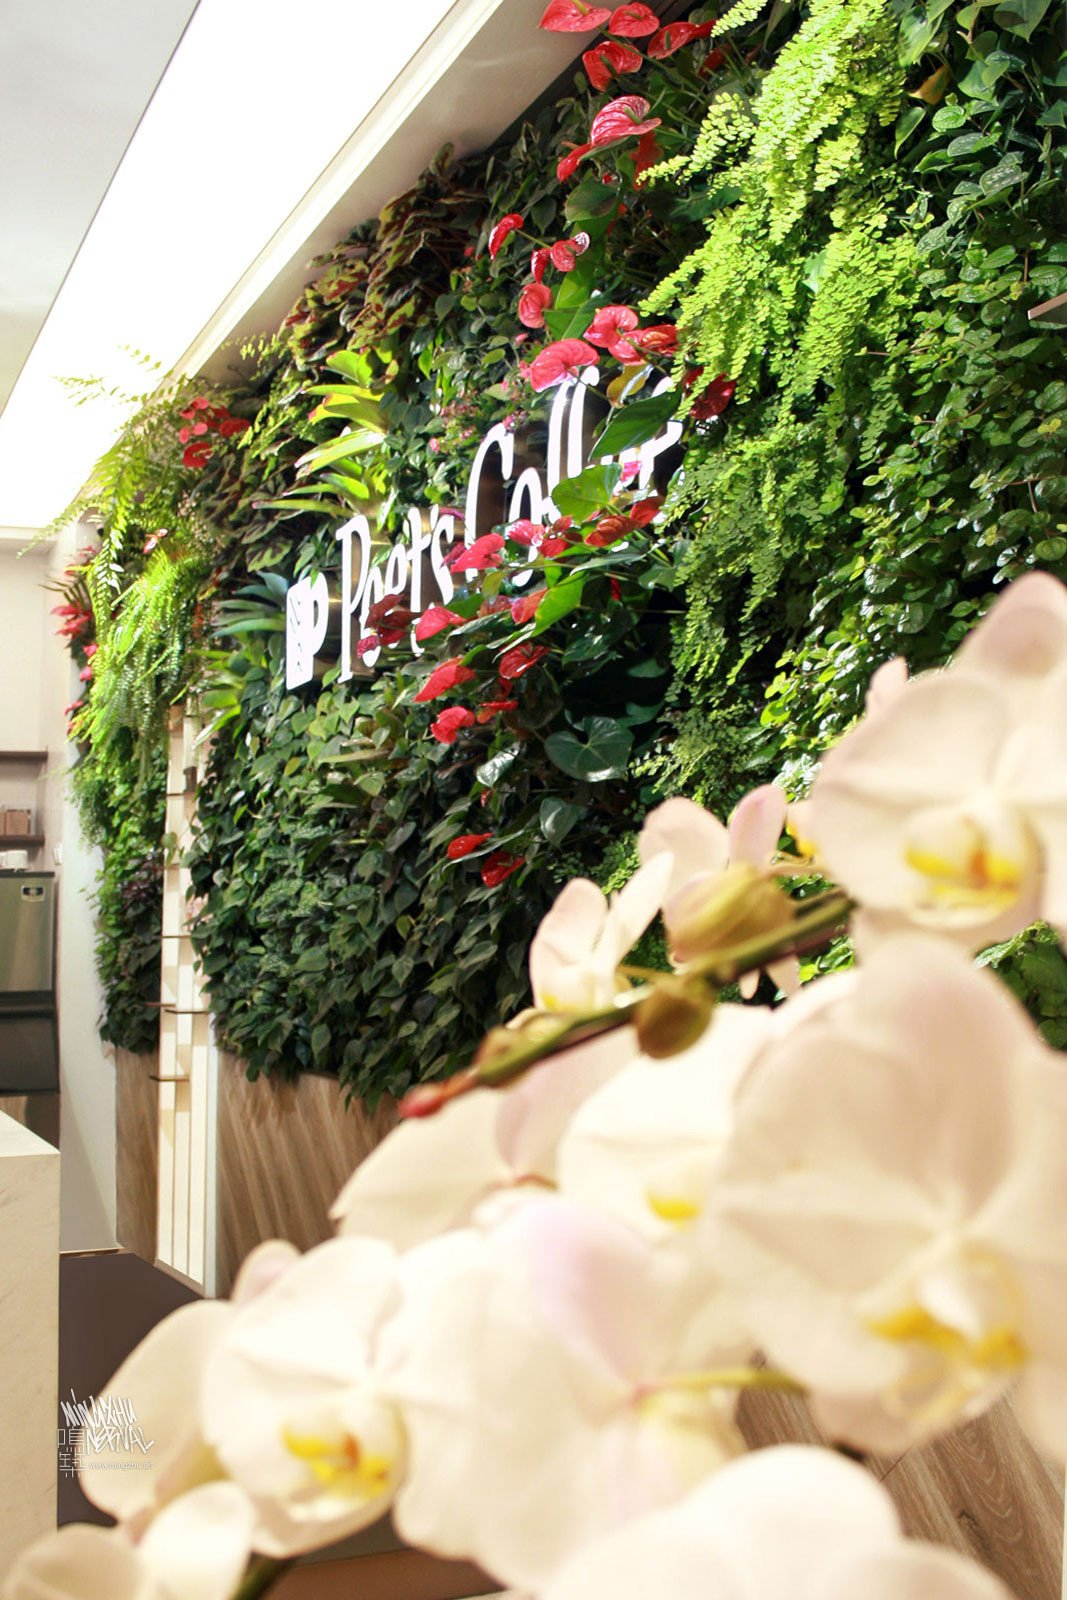 Mingzhu Nerval vertical living wall experts created a vertical living green wall for Peet's Coffee in Shanghai, 2019